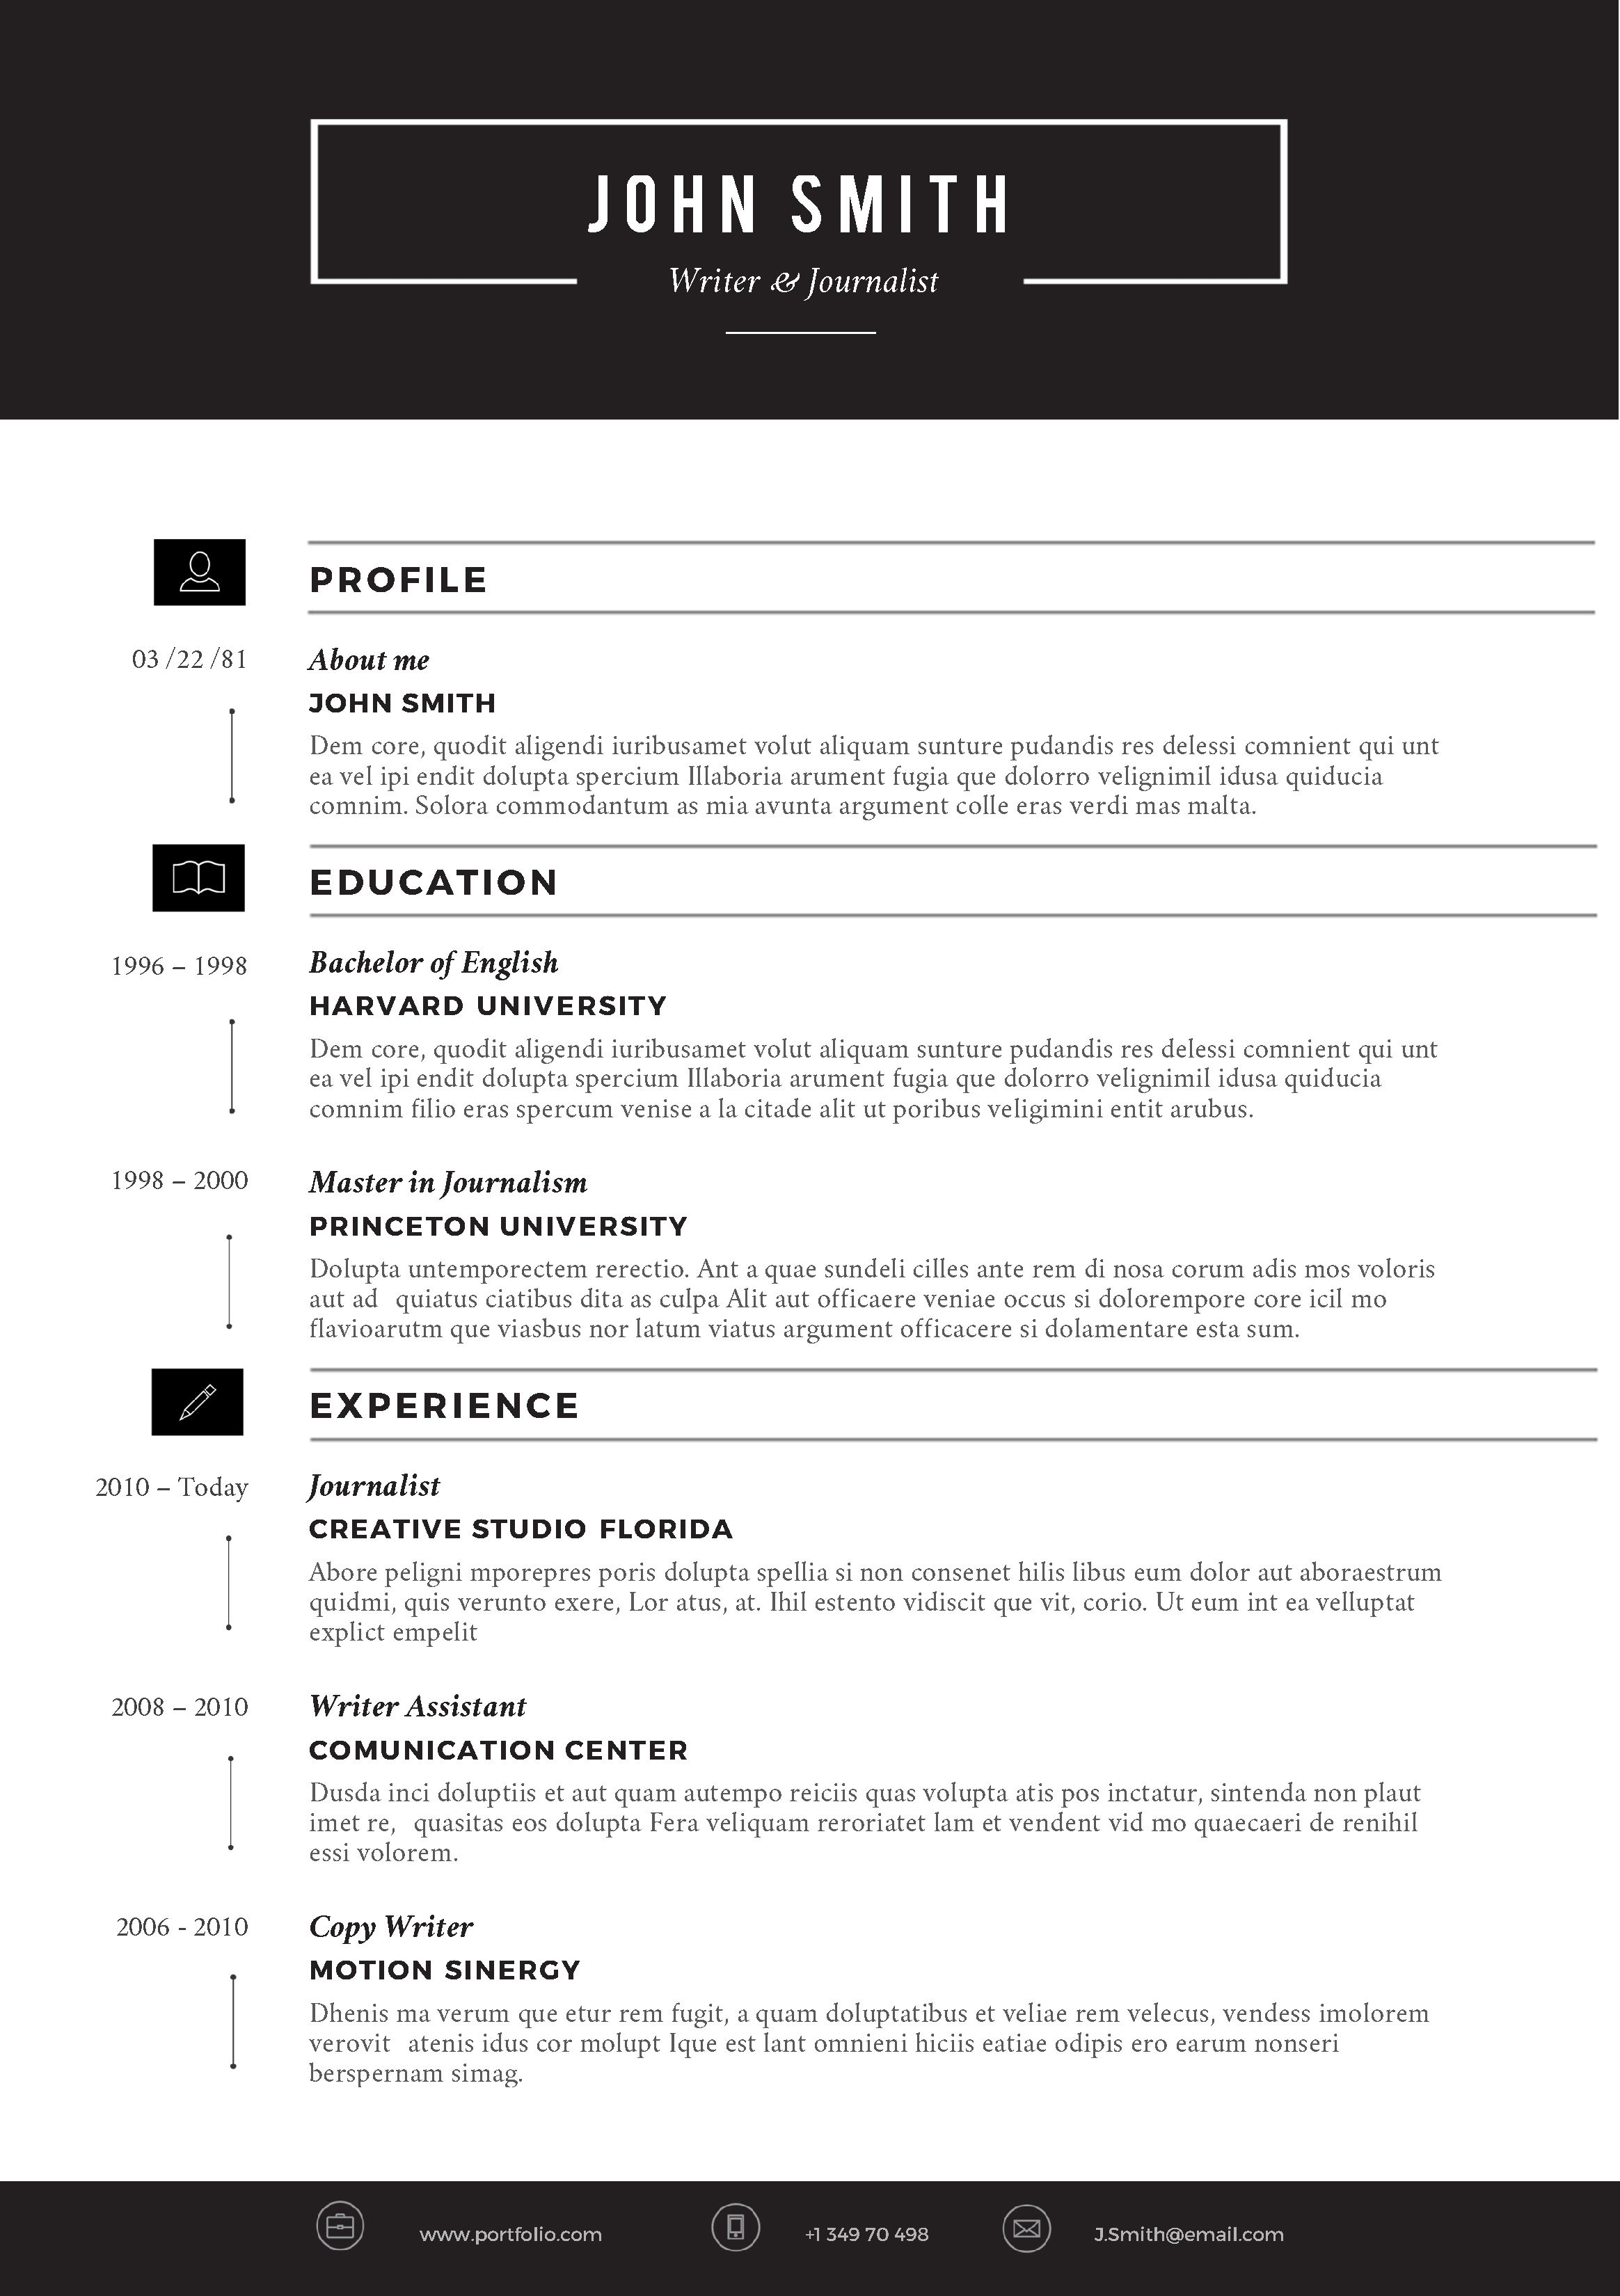 Best Inspiration Resumes: Microsoft Word Sleek Resume Template 1 Jobs Standard of Word Resume on divefellows.com